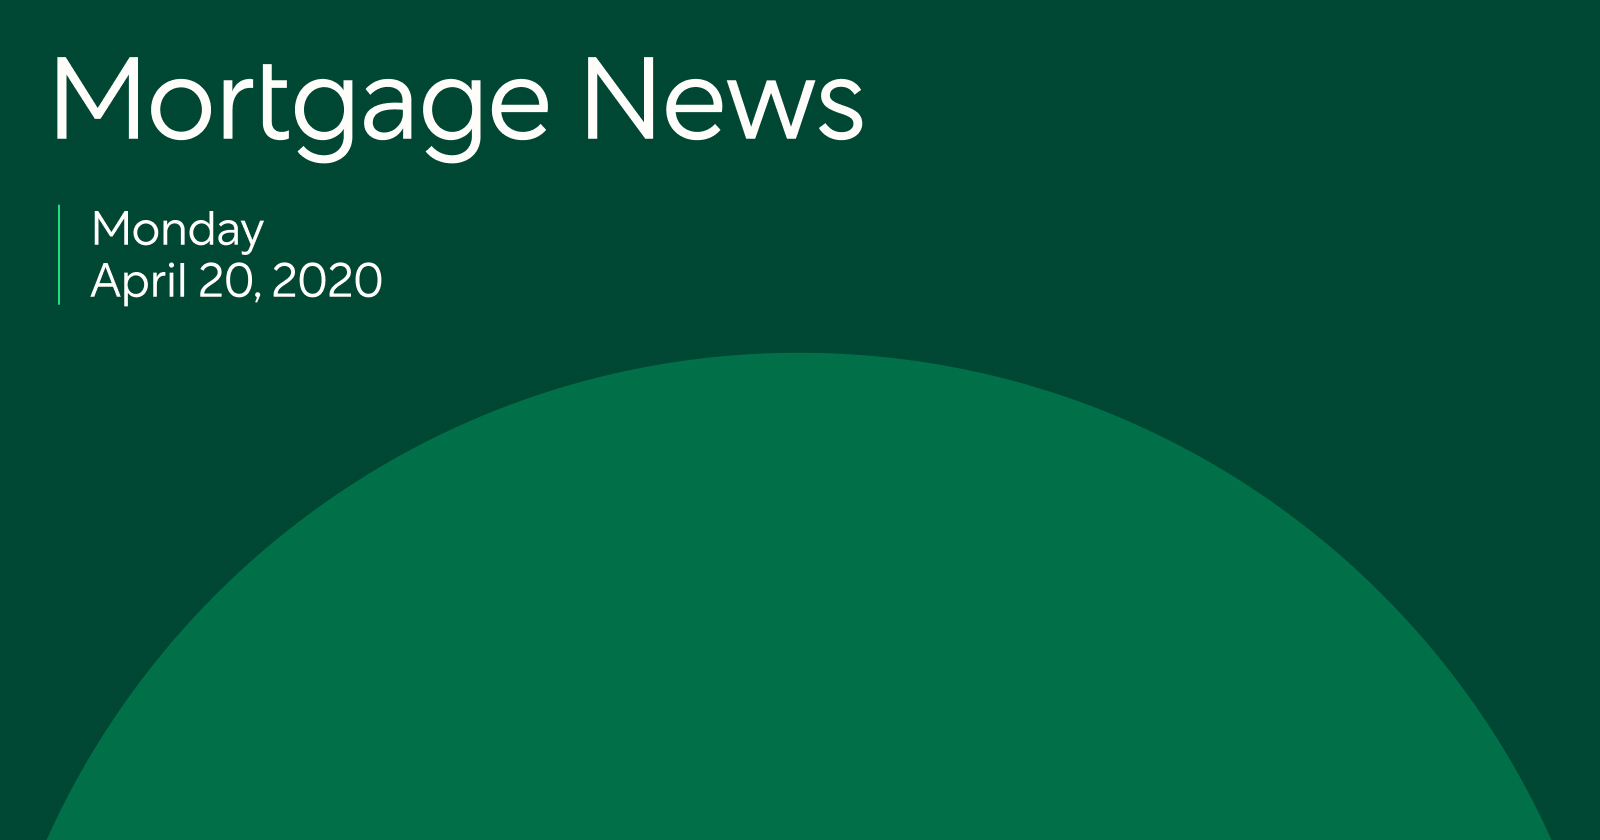 Mortgage News 4/20/20